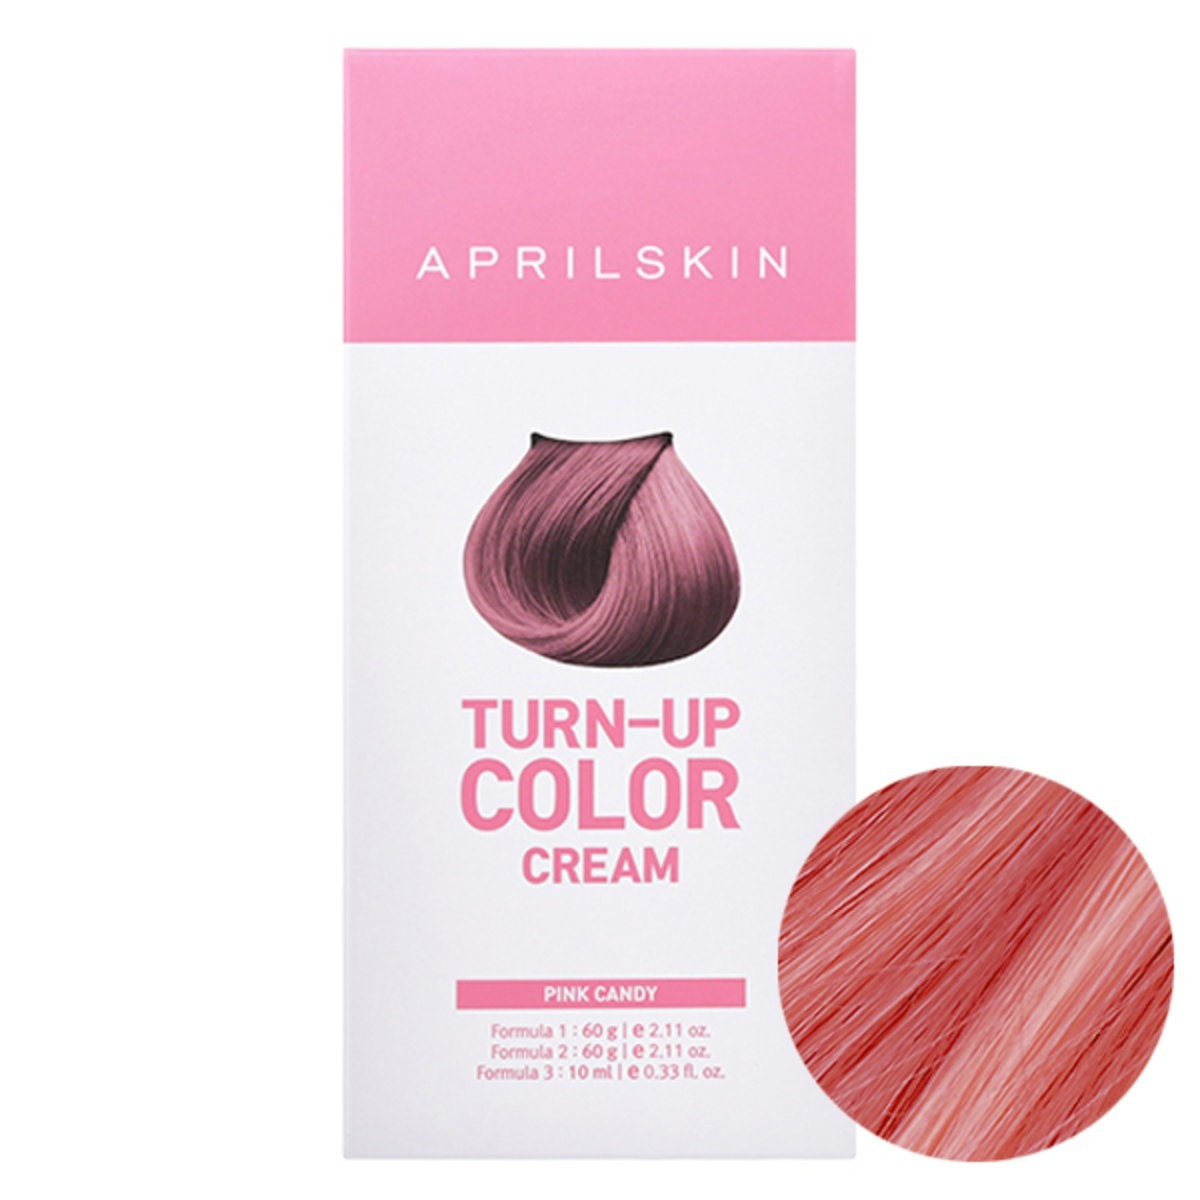 APRILSKIN Turn-up Color Cream